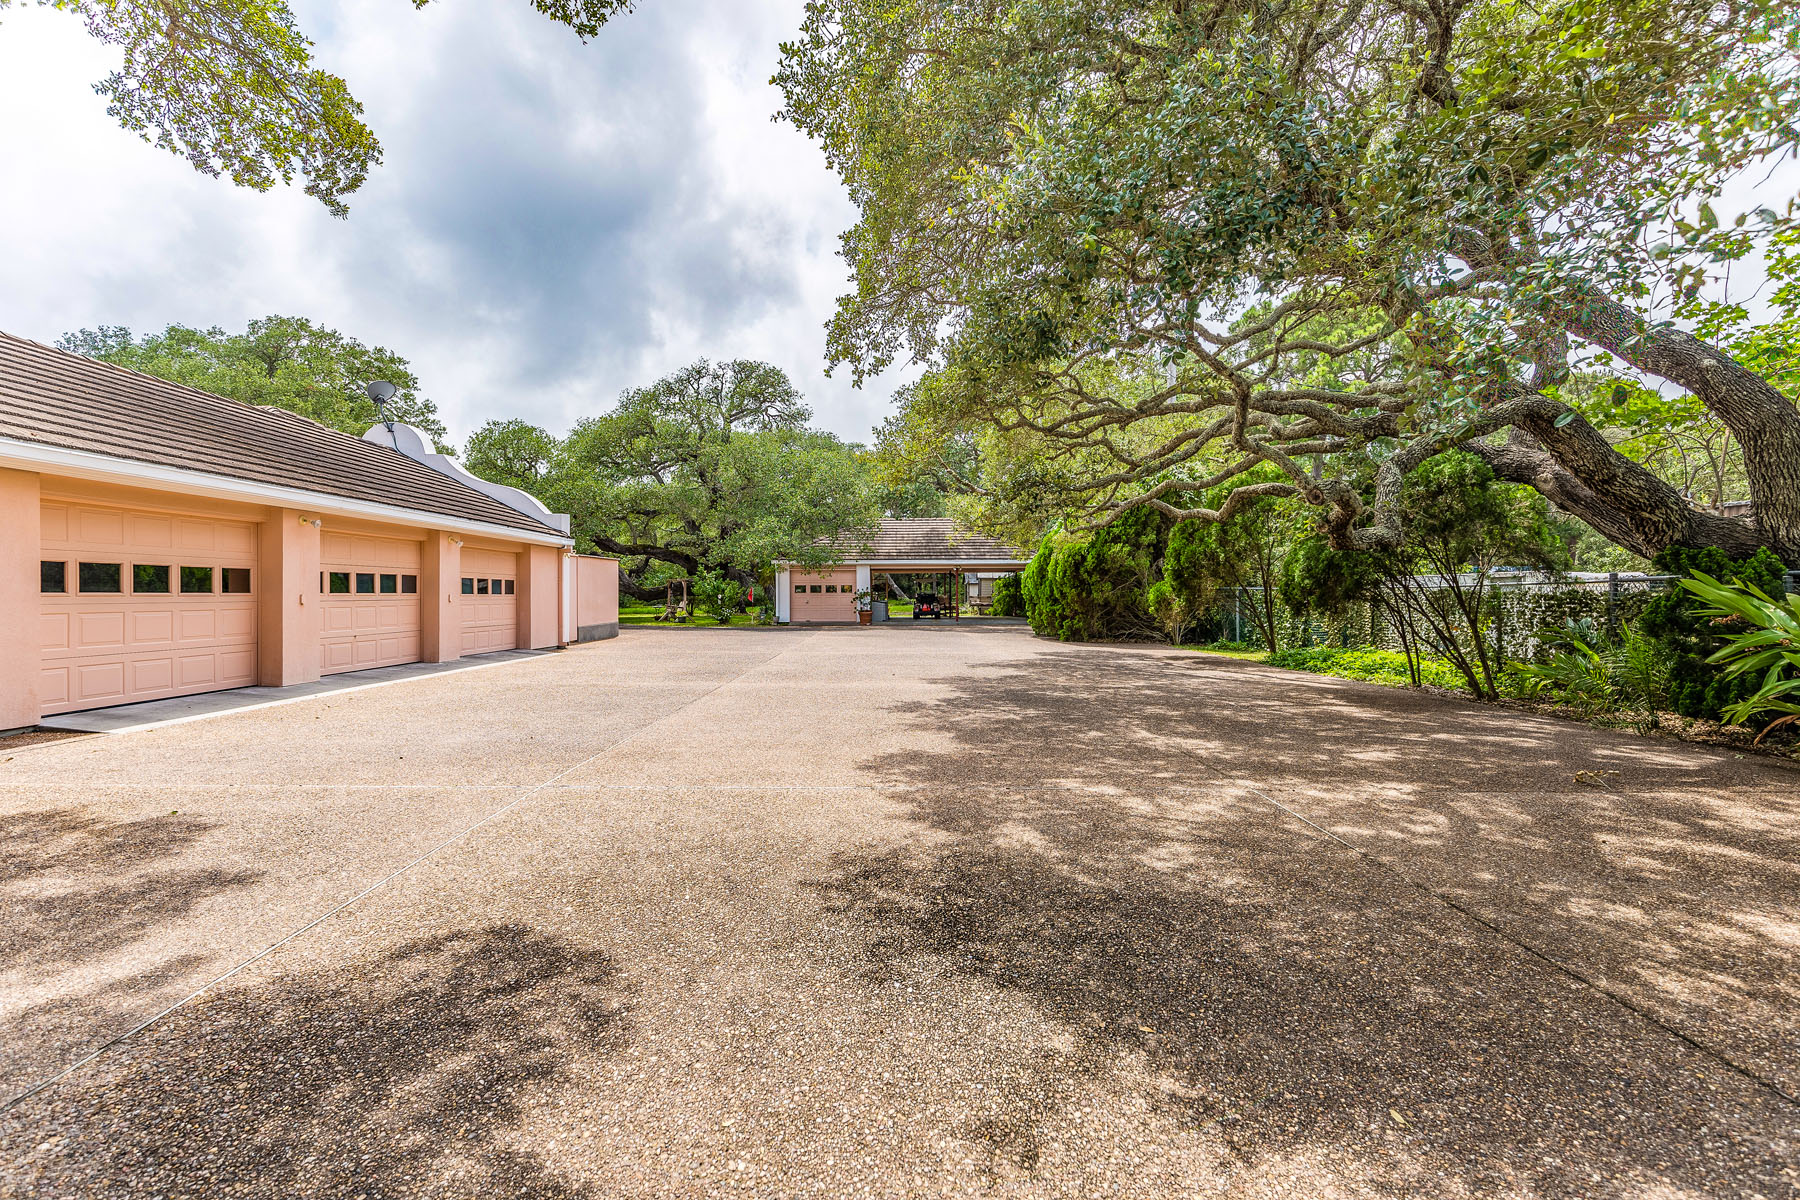 Additional photo for property listing at Villa Maria Estate 2114 Lakeview Dr Rockport, Texas 78382 Estados Unidos